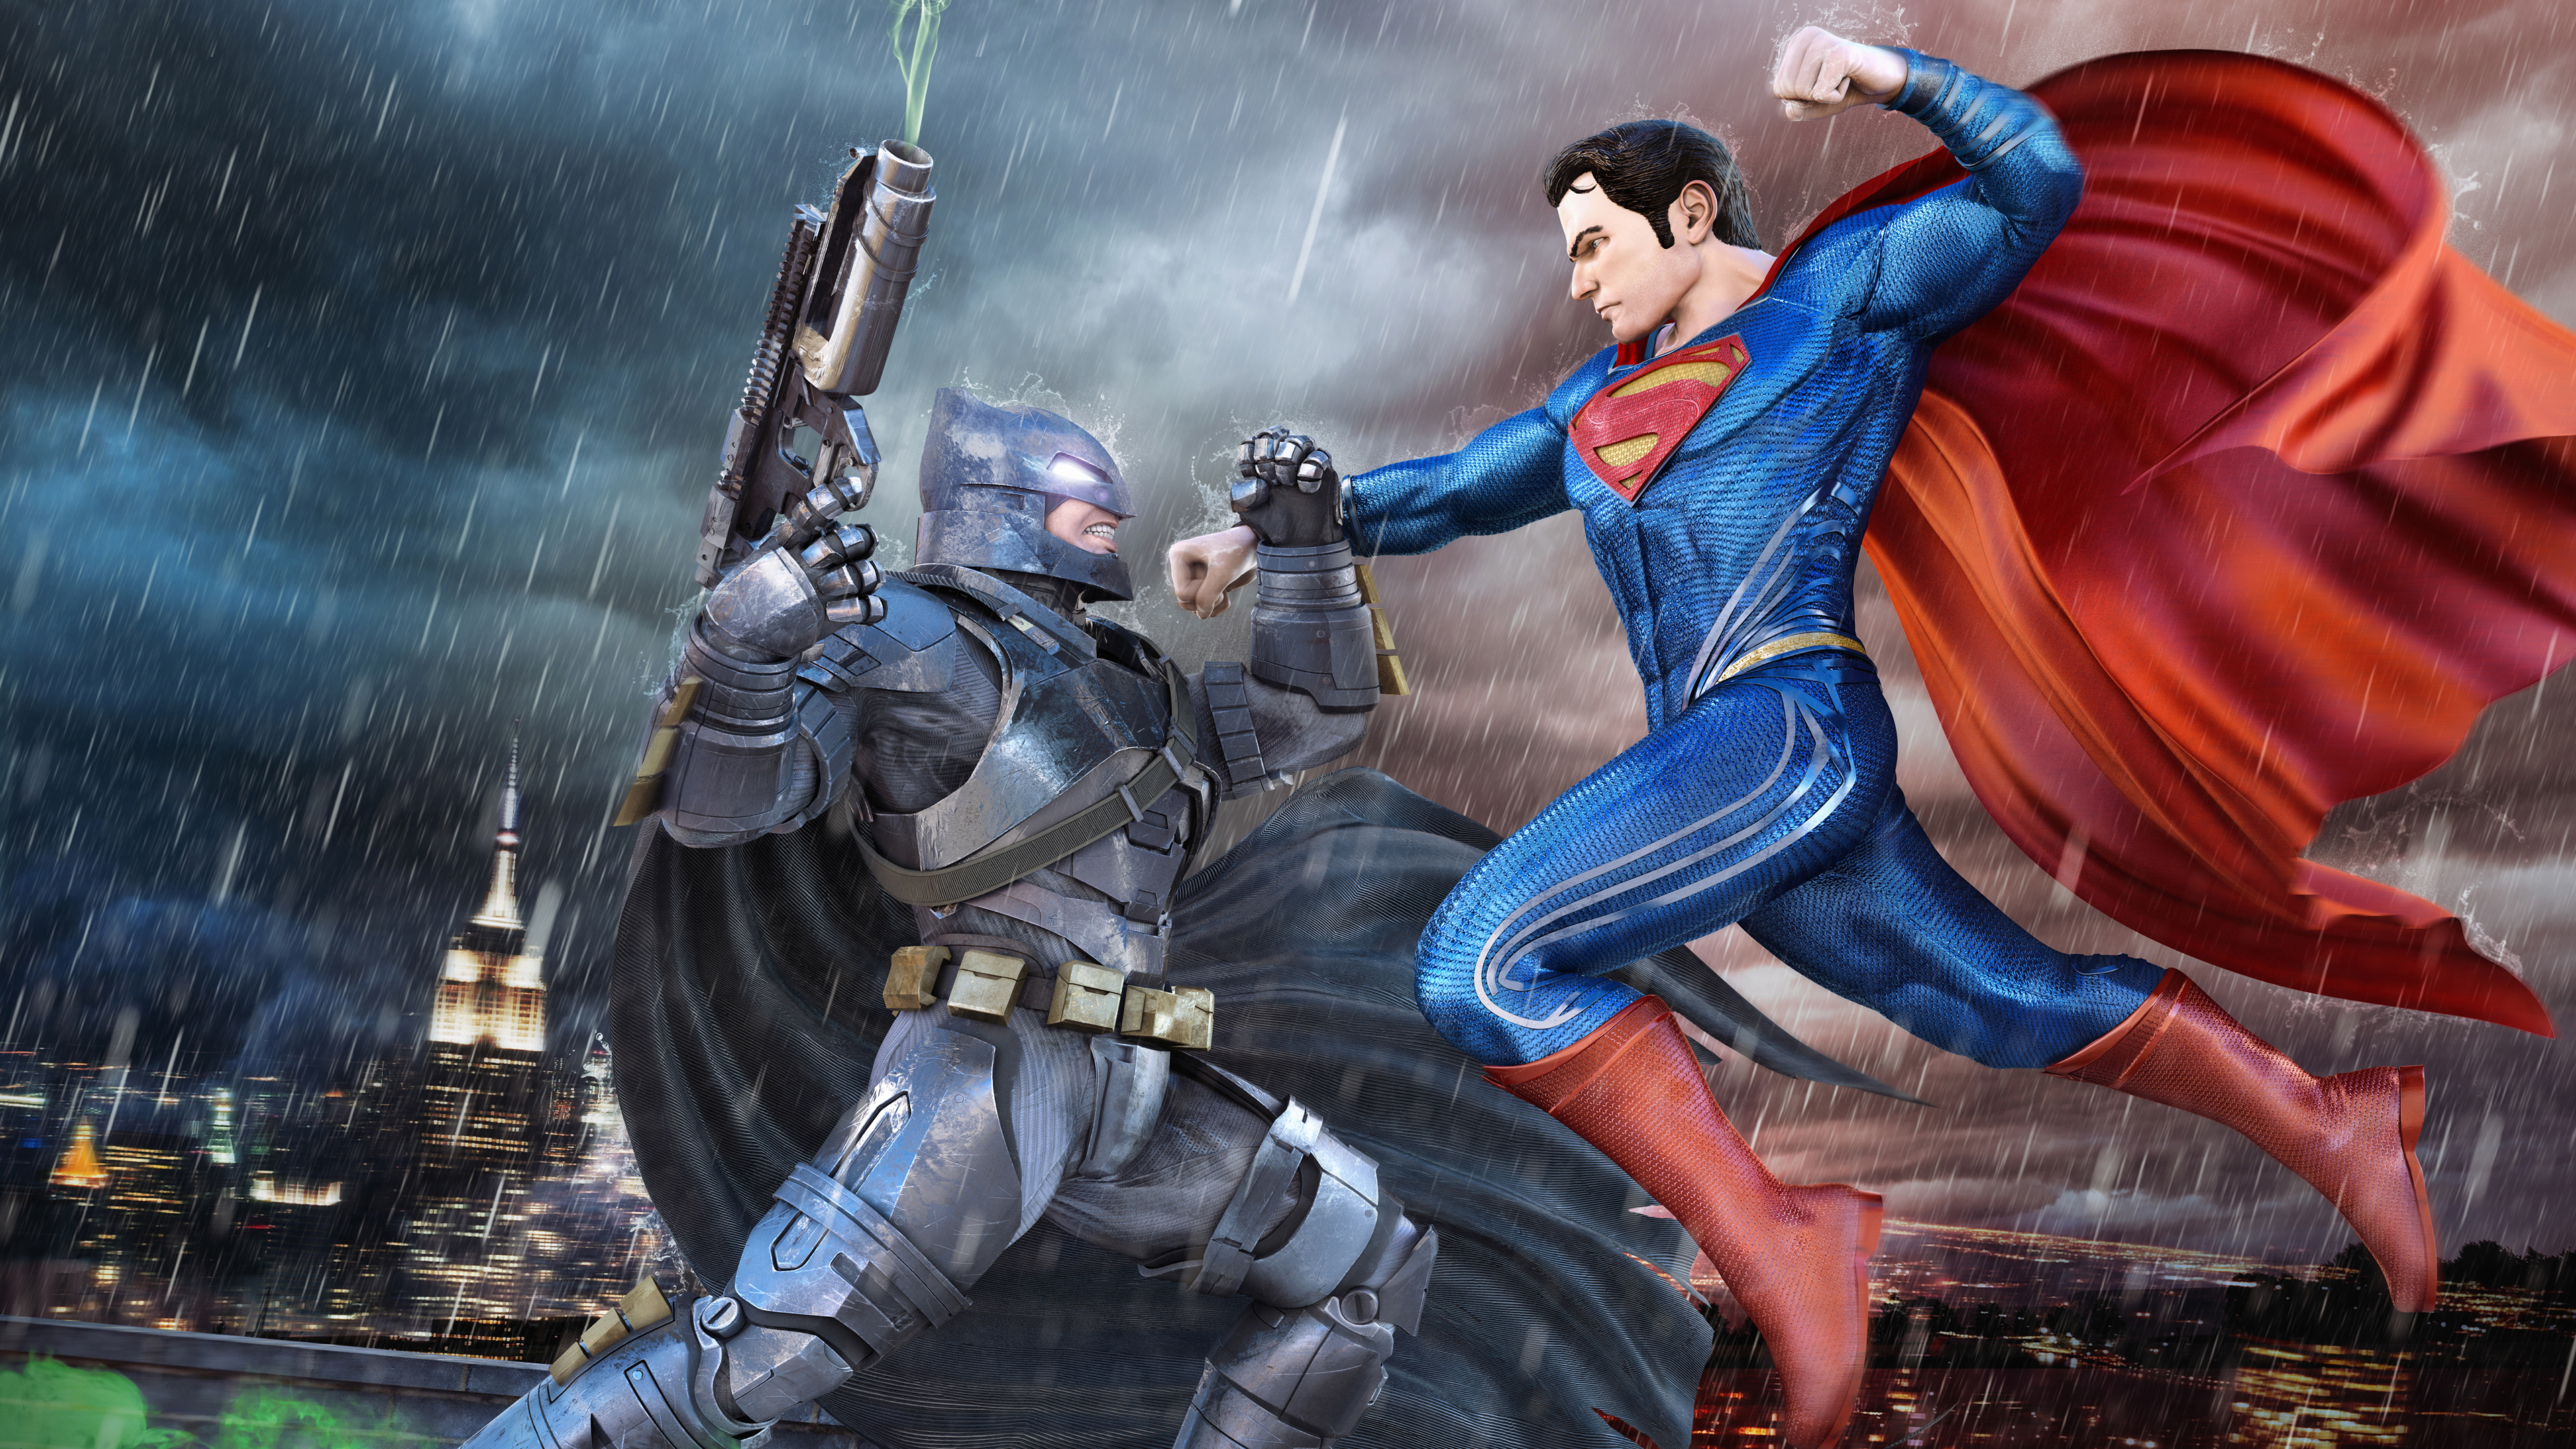 batman superman fight 4k 1556184769 - Batman Superman Fight 4k - superman wallpapers, superheroes wallpapers, hd-wallpapers, digital art wallpapers, behance wallpapers, batman wallpapers, artwork wallpapers, 4k-wallpapers